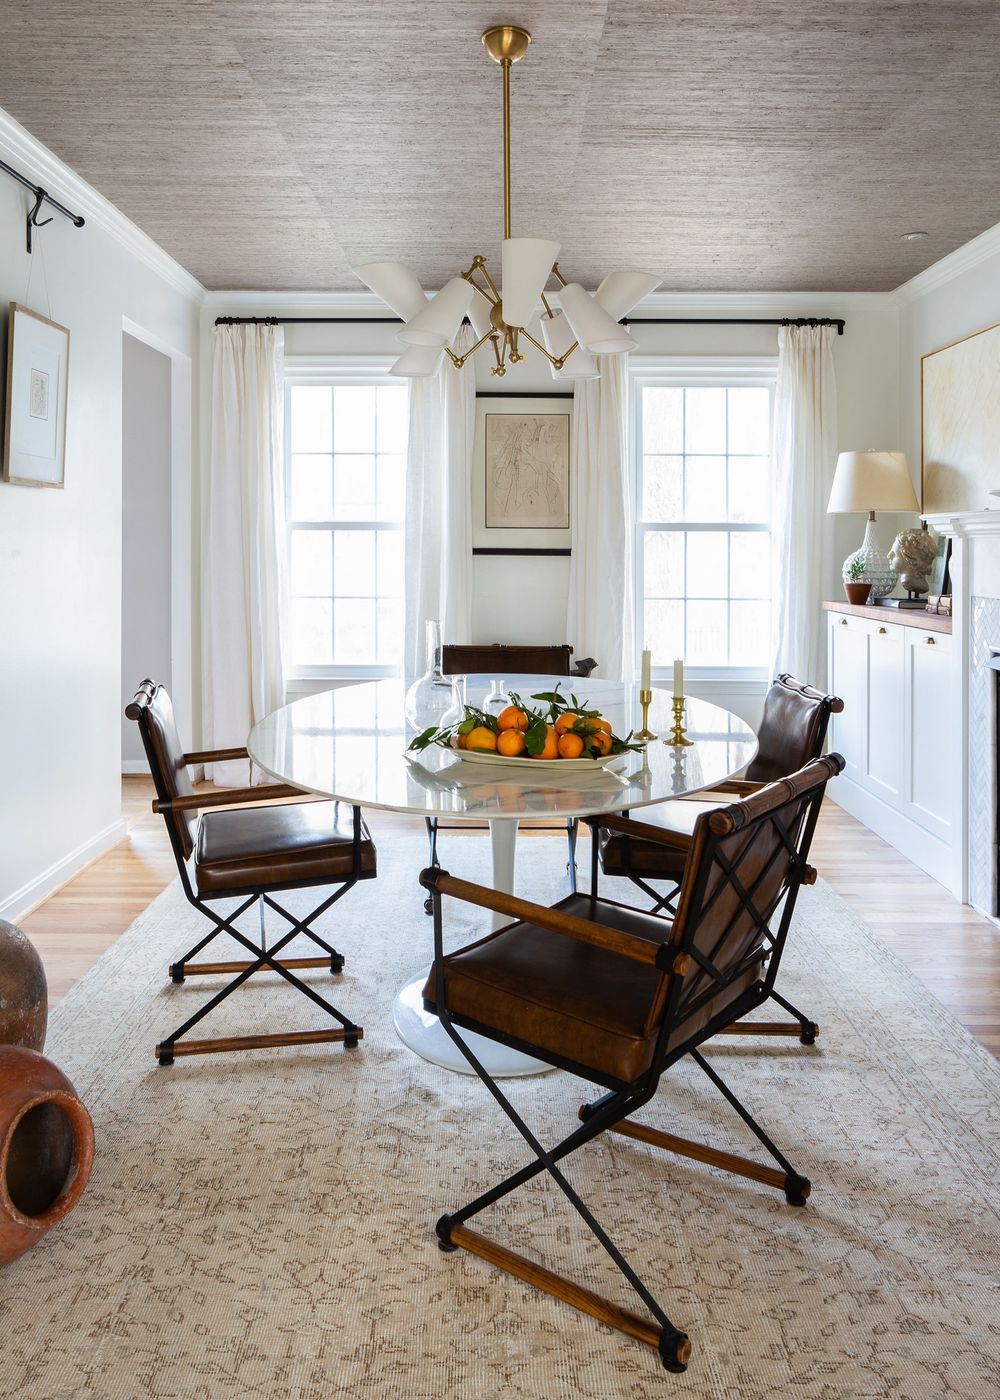 Dining Room Design, DC Dining Room Design, Alison Giese, DC Interiors Photographer, Northern VA Interiors Photographer